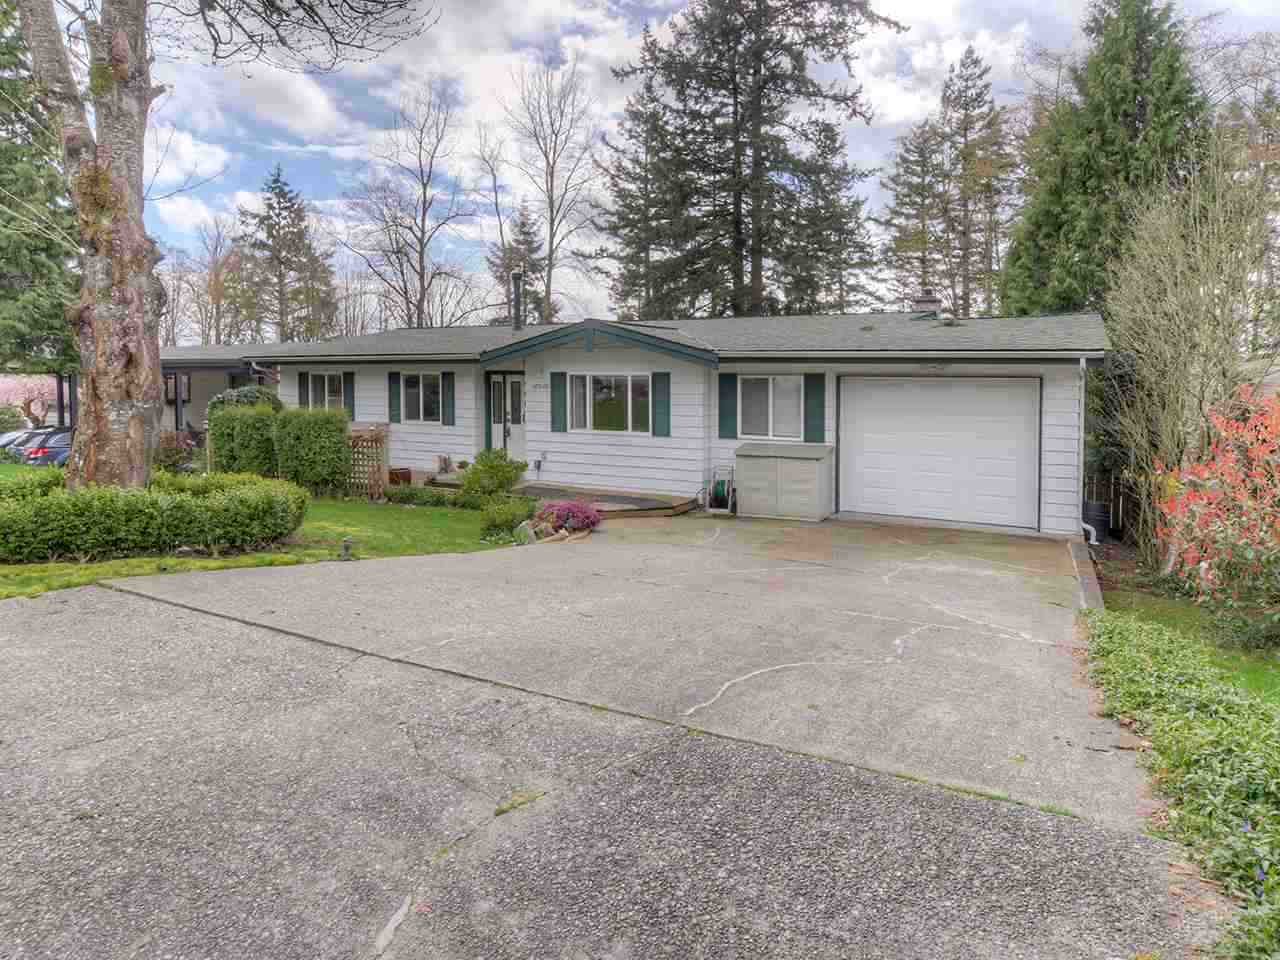 Detached at 10510 SANTA MONICA DRIVE, N. Delta, British Columbia. Image 1